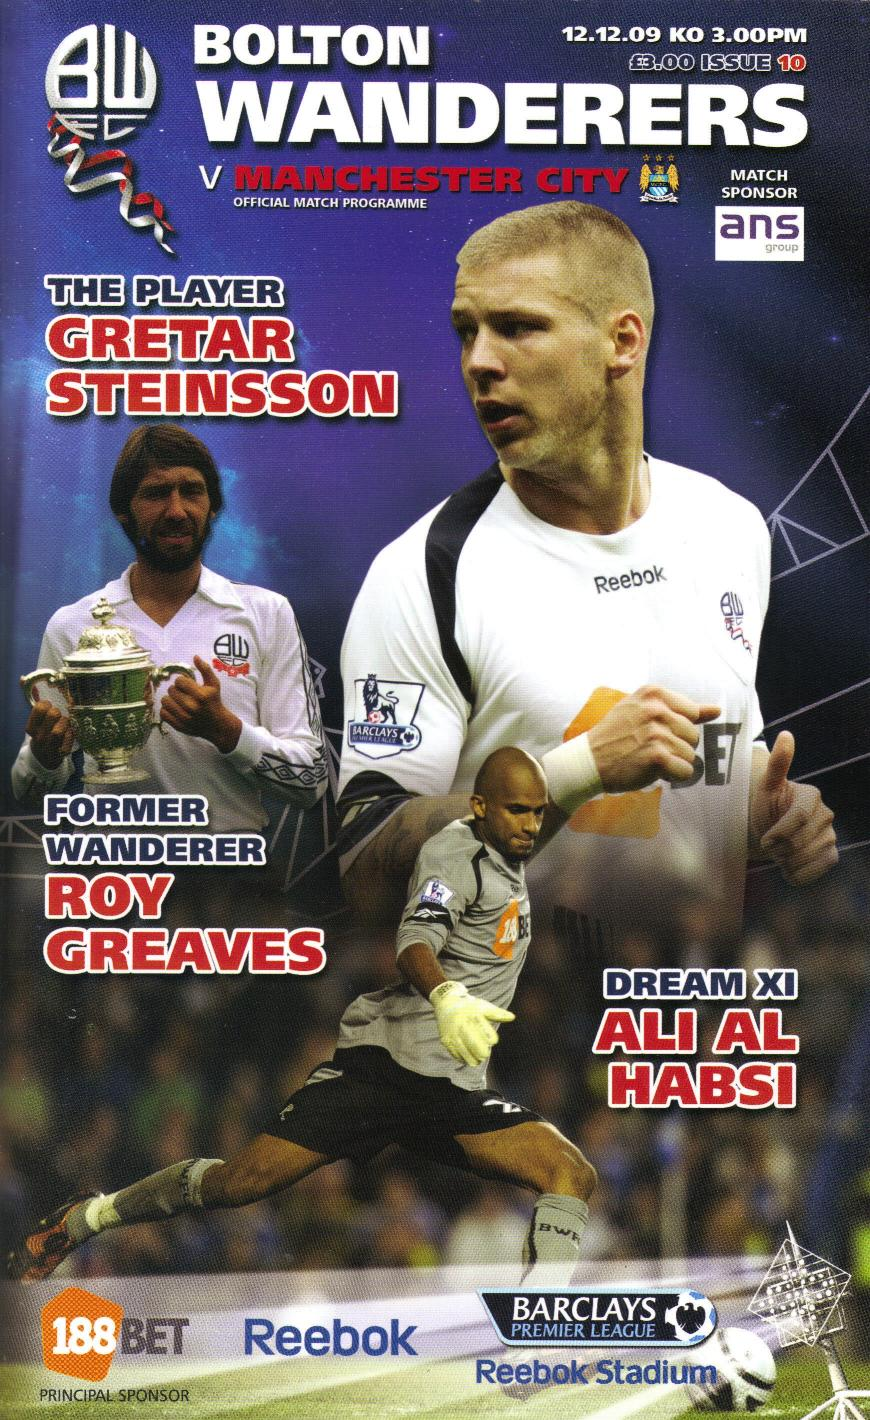 BOLTON v MAN CITY 2009/10